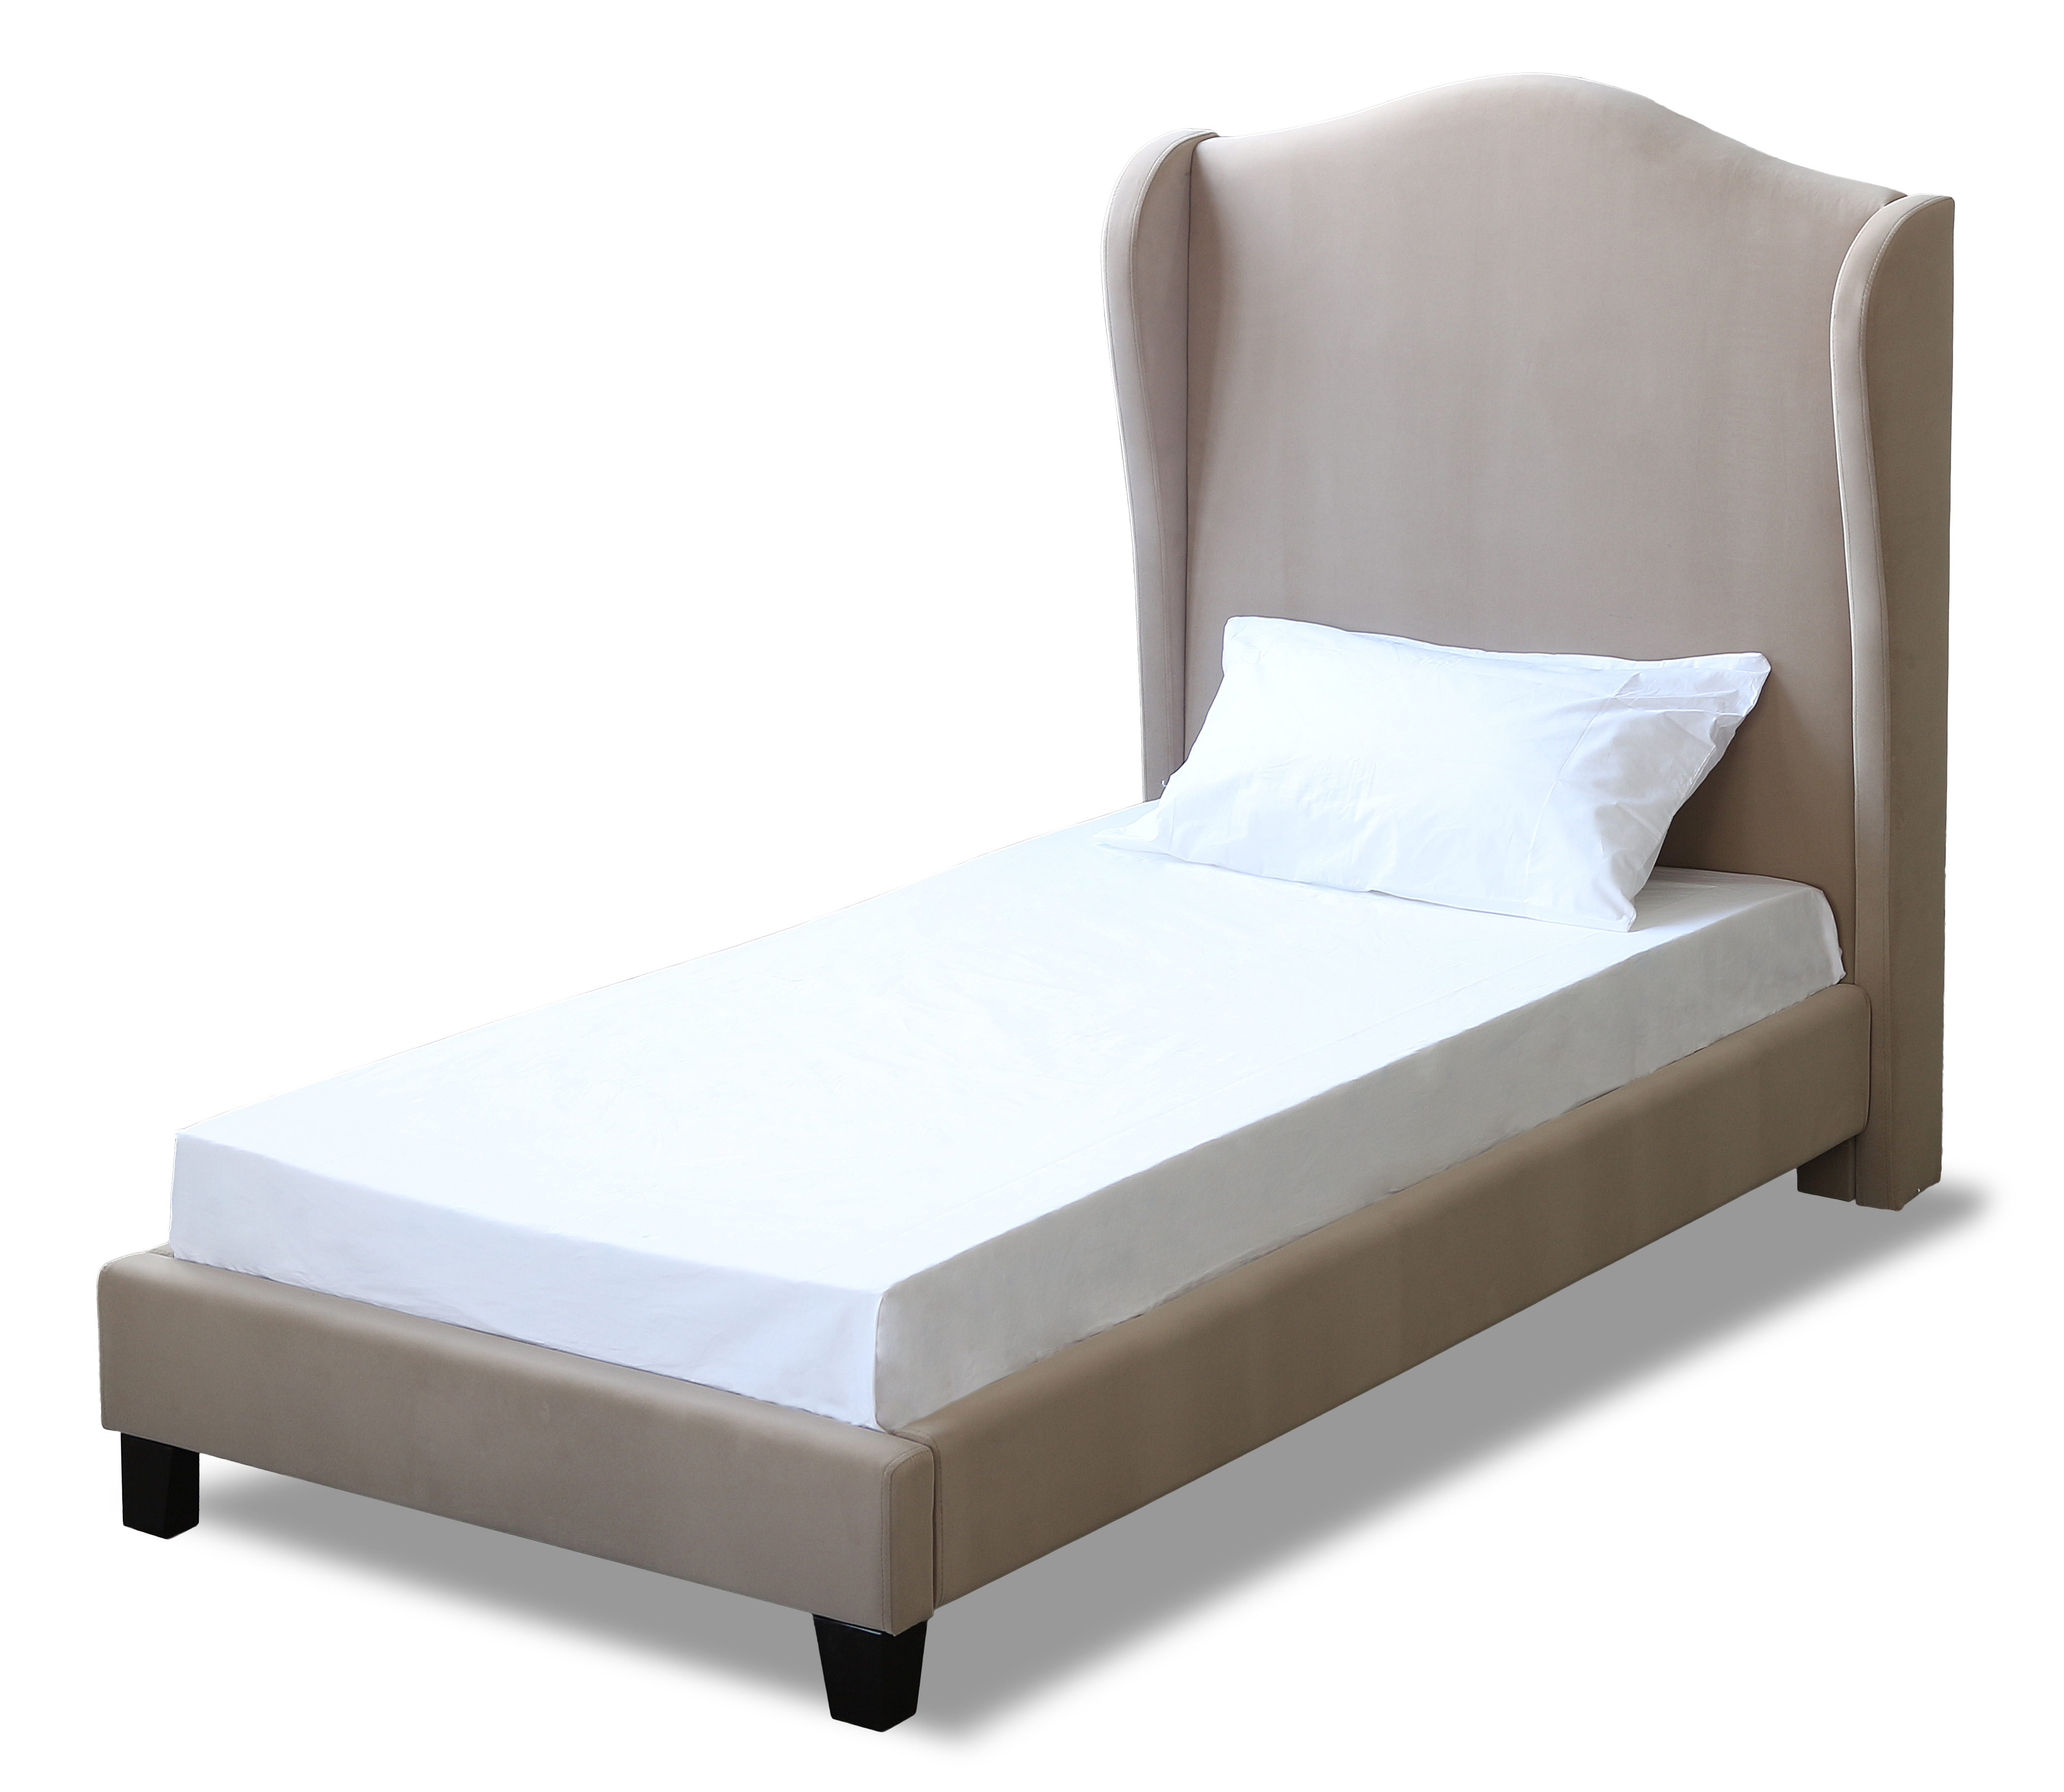 Chateaux 3.0 Single Bed Beige